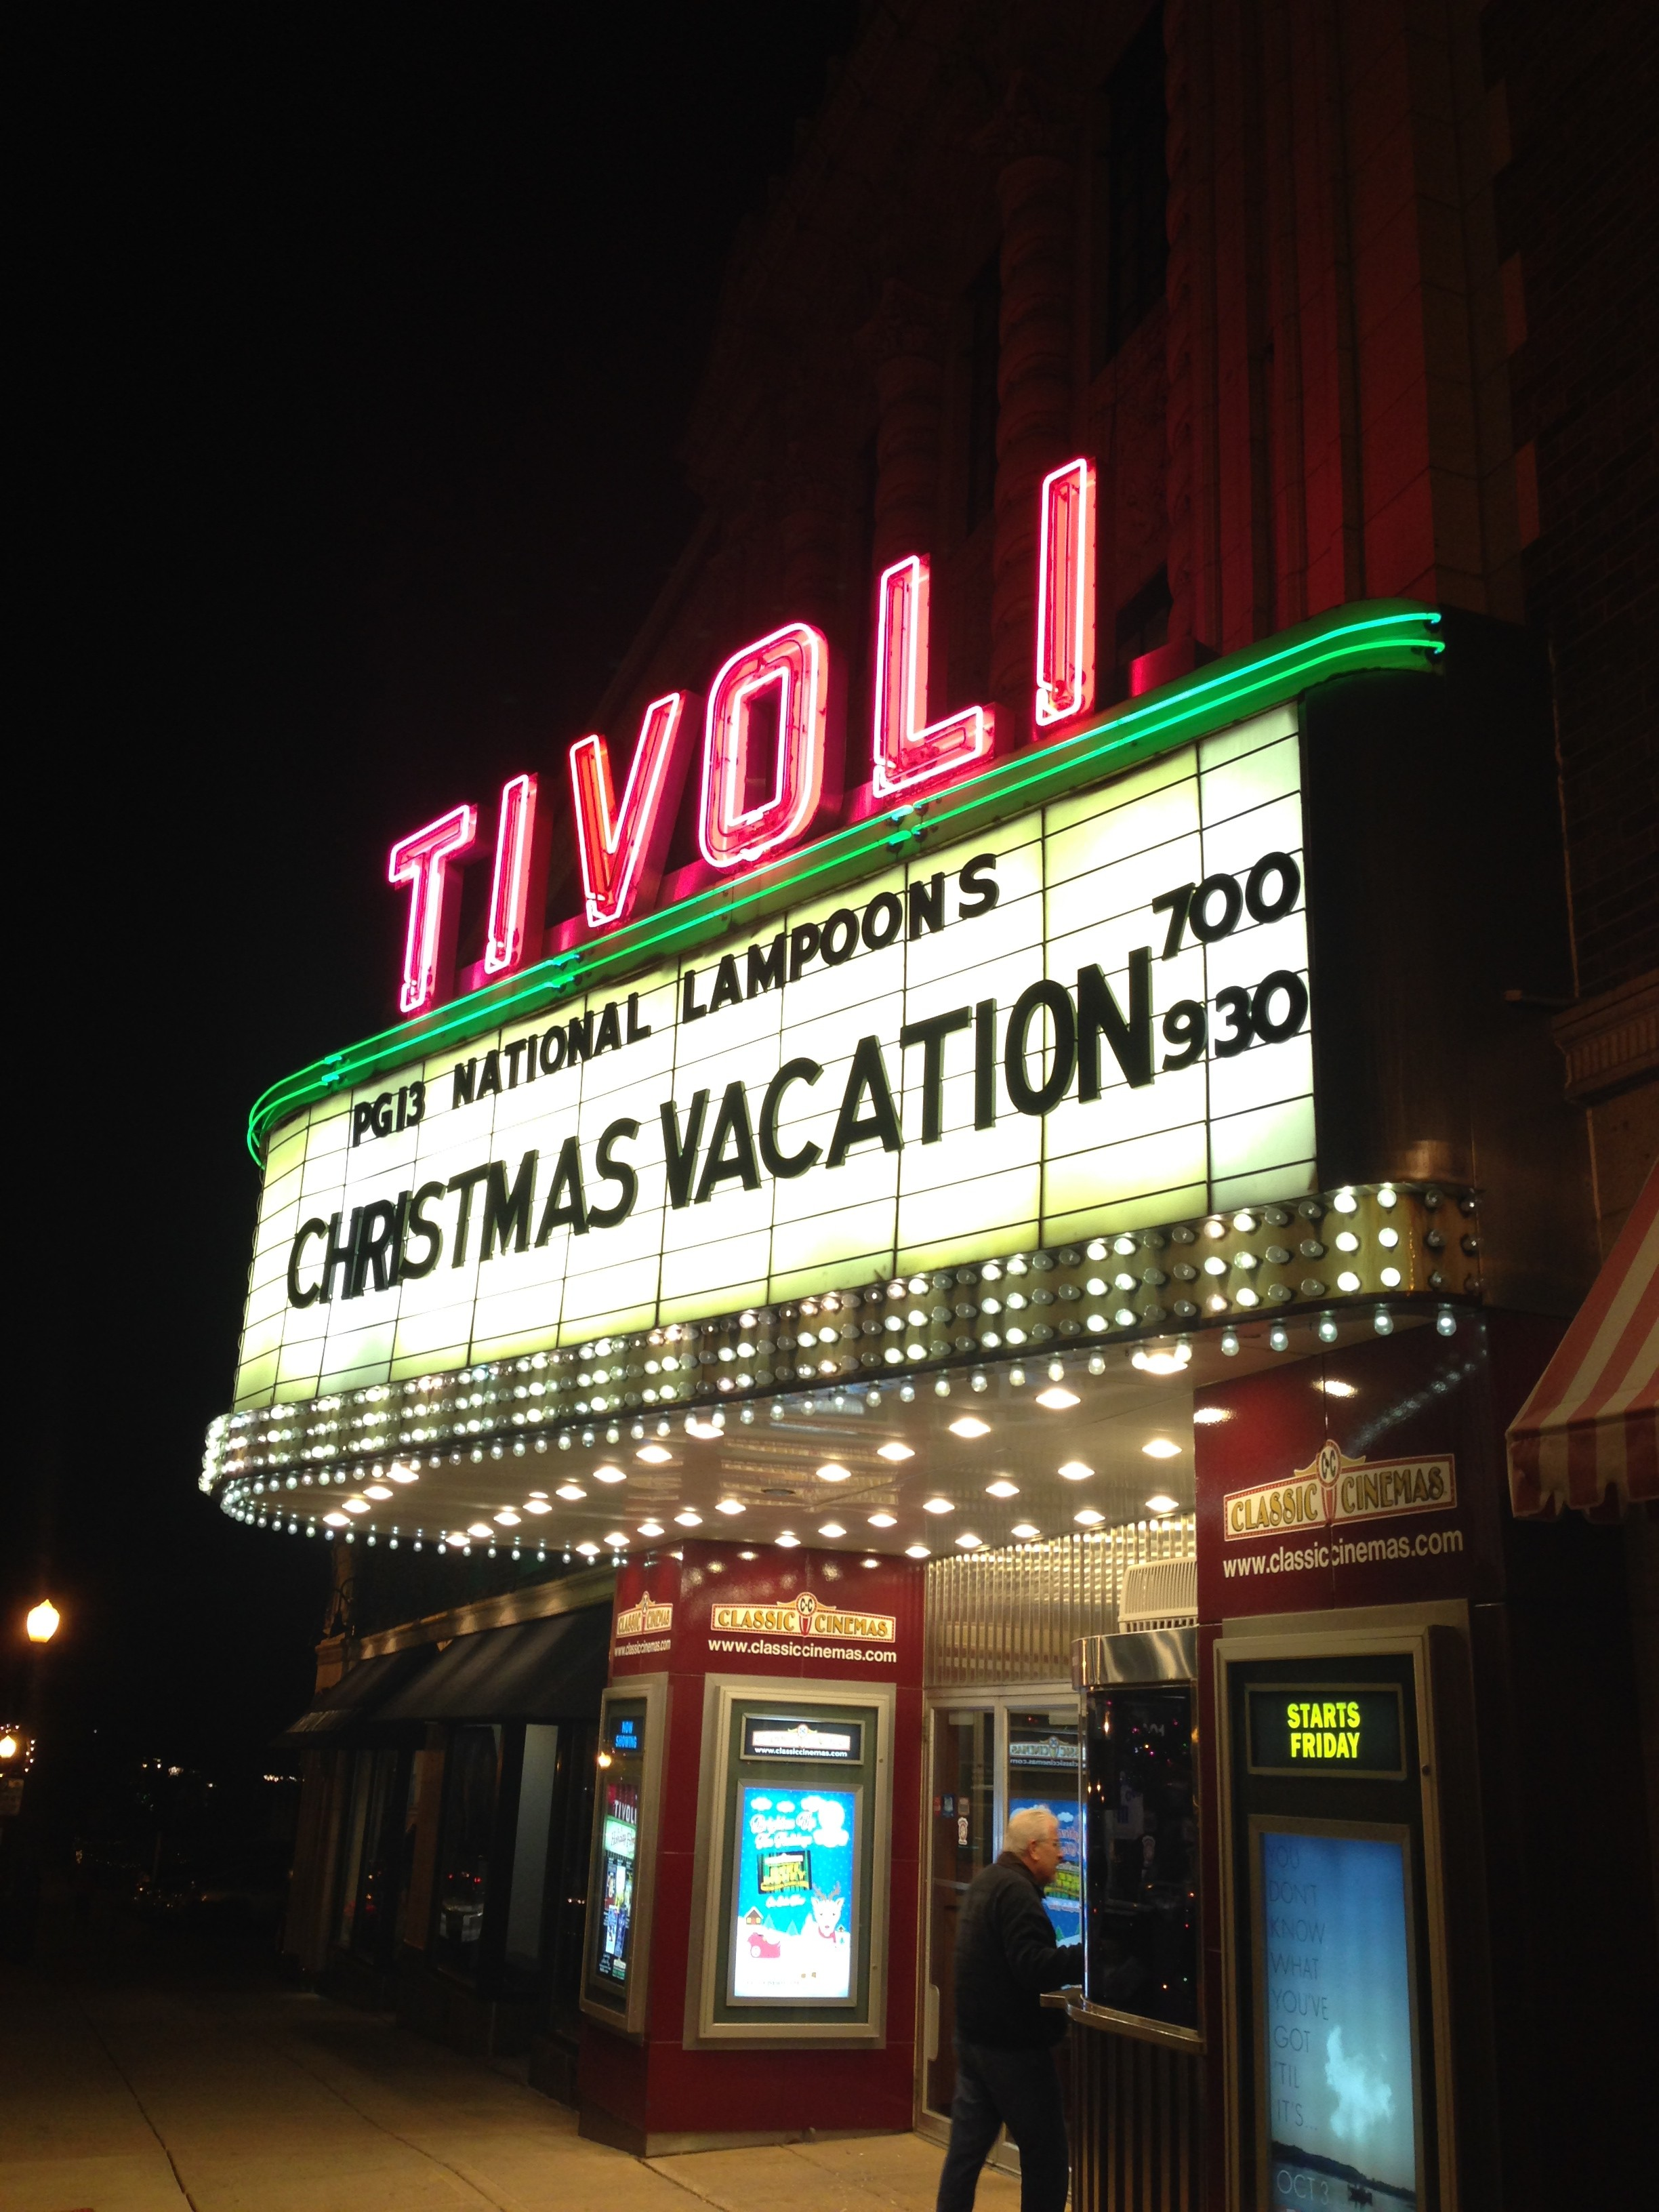 Tivoli Theater In Downers Grove Five On Friday Tomatoes For Cucumbers